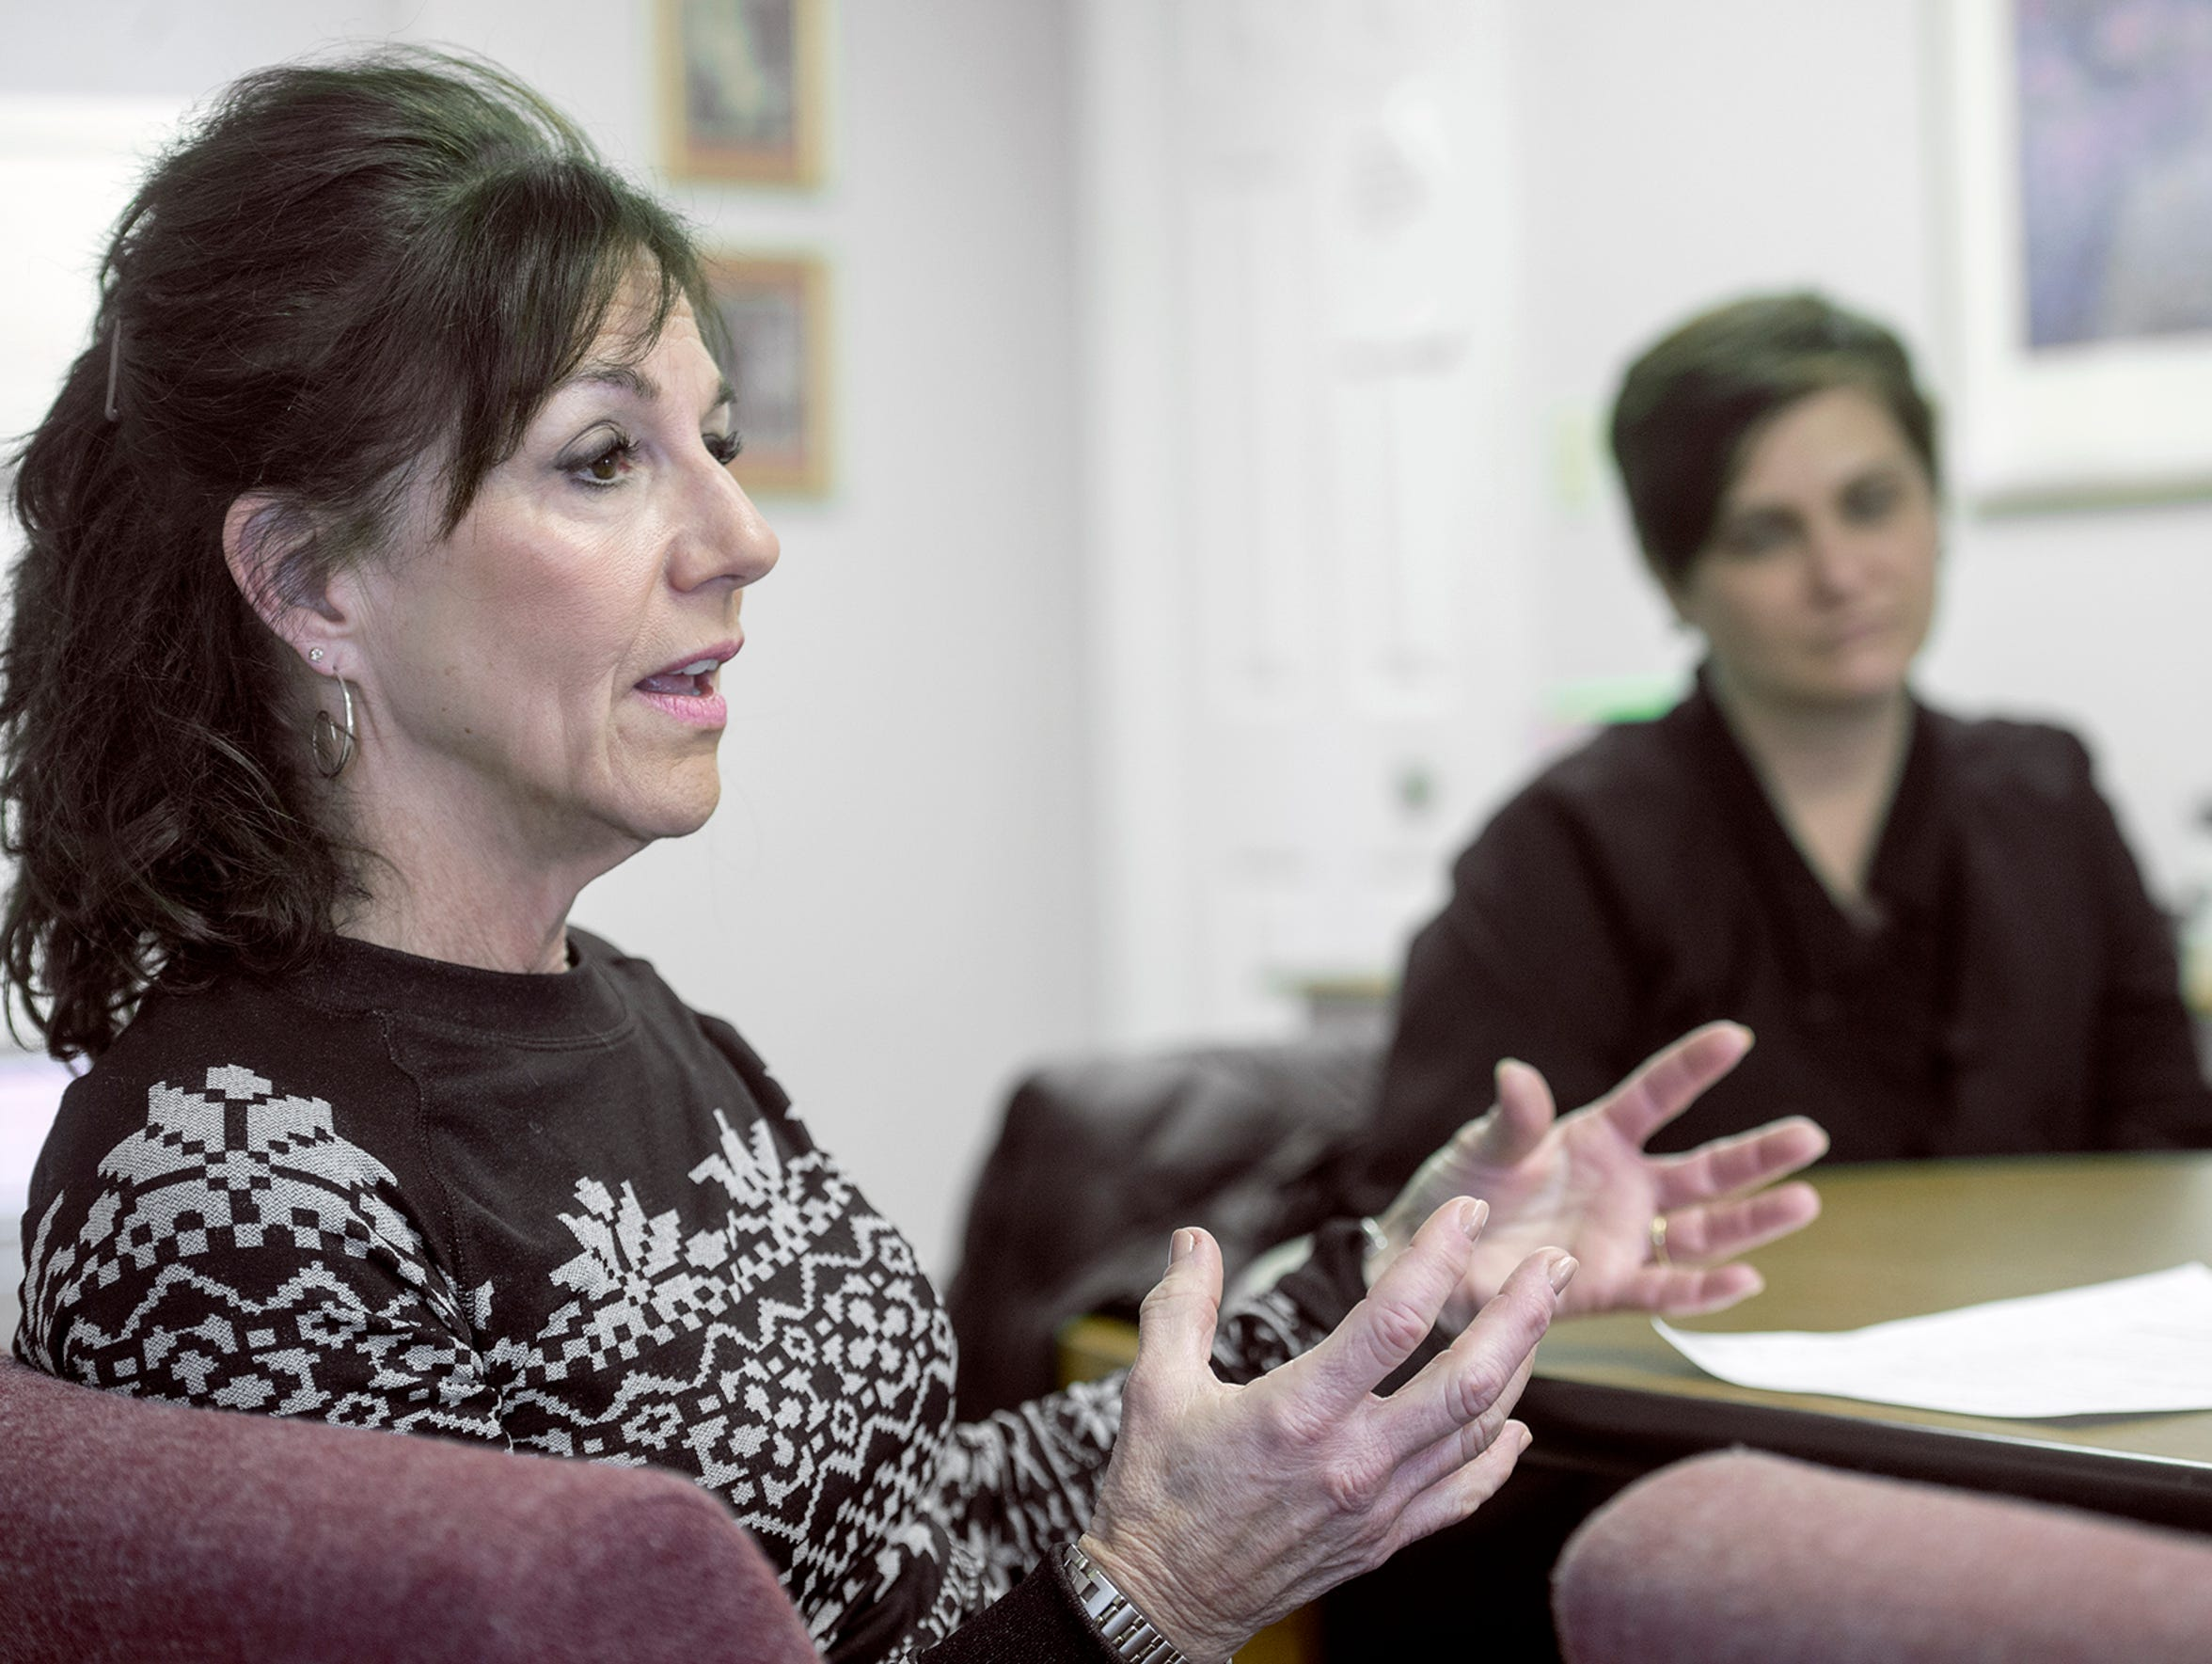 Anne Acker, director of YWCA Hanover Safe Home, was